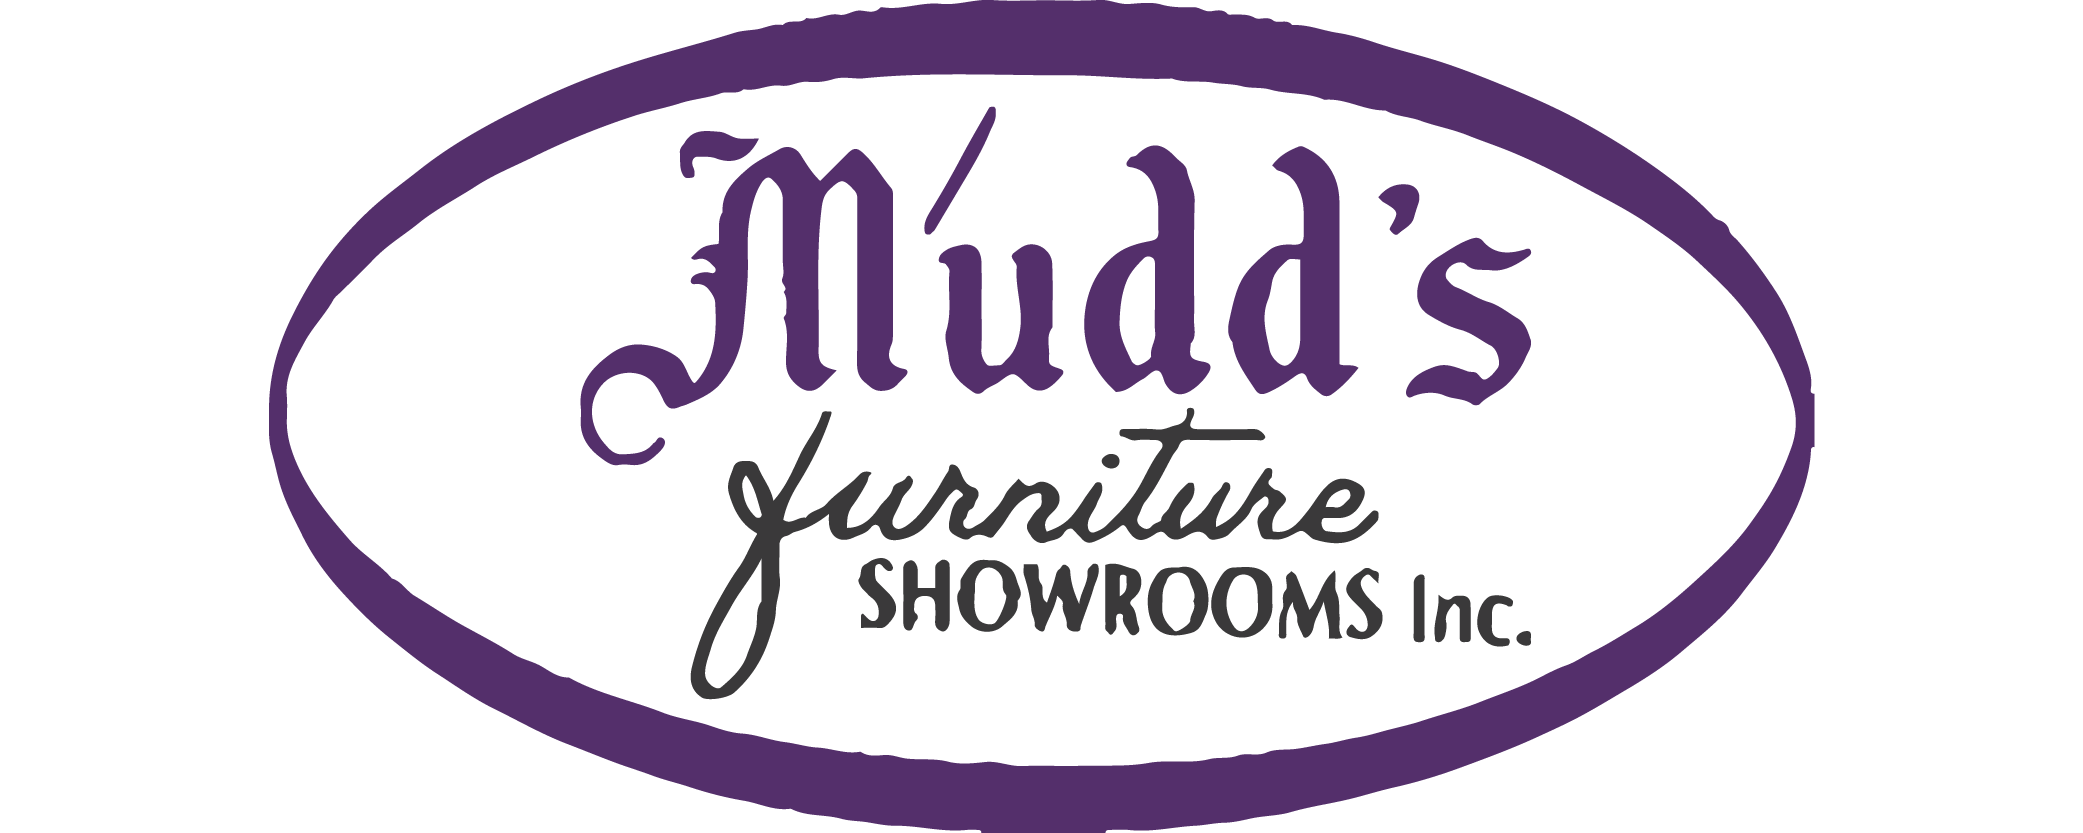 Mudd's Furniture Showrooms